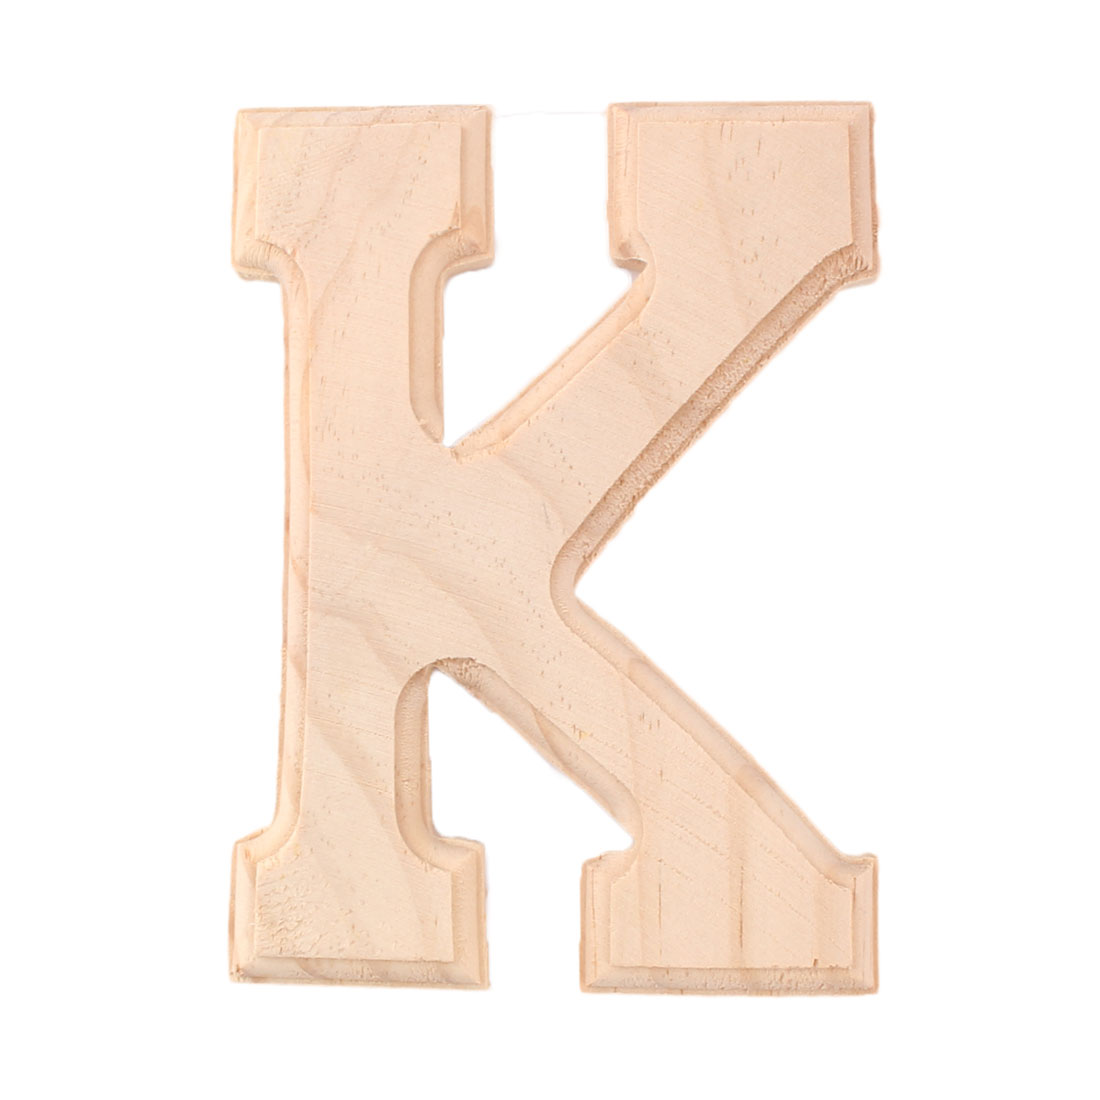 Household Wooden Decoration English K Letter Alphabet Word Free DIY Wall Wood Color